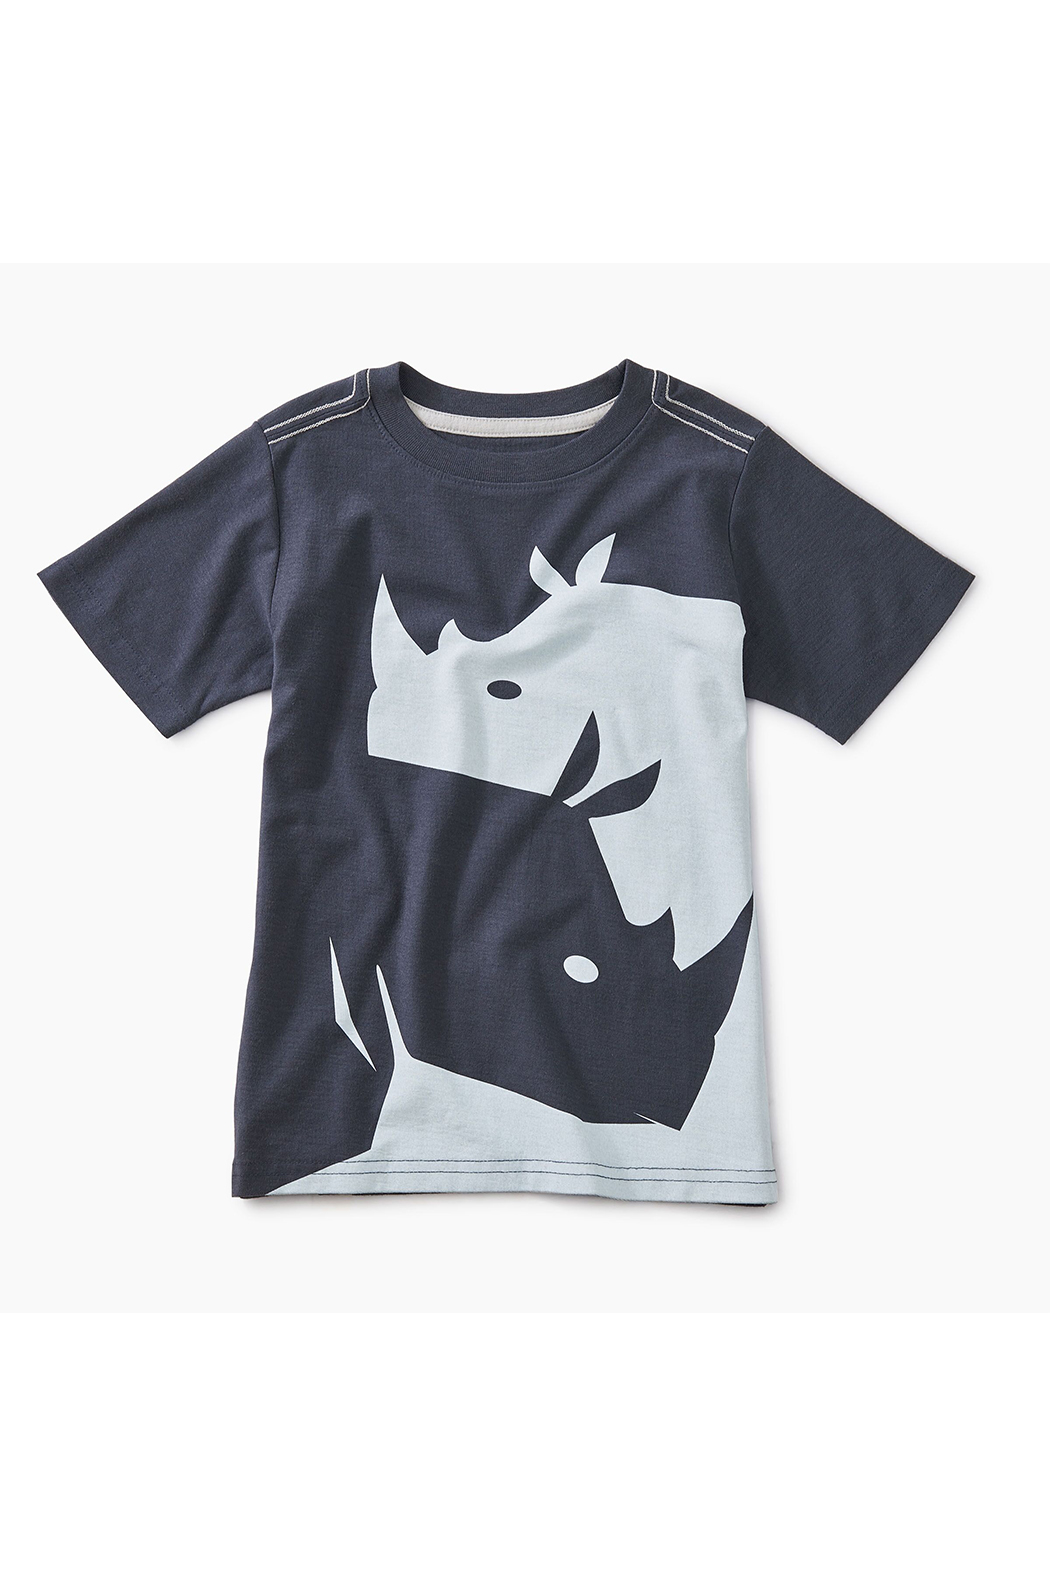 Tea Collection Ying Yang Rhino Graphic Tee - Main Image